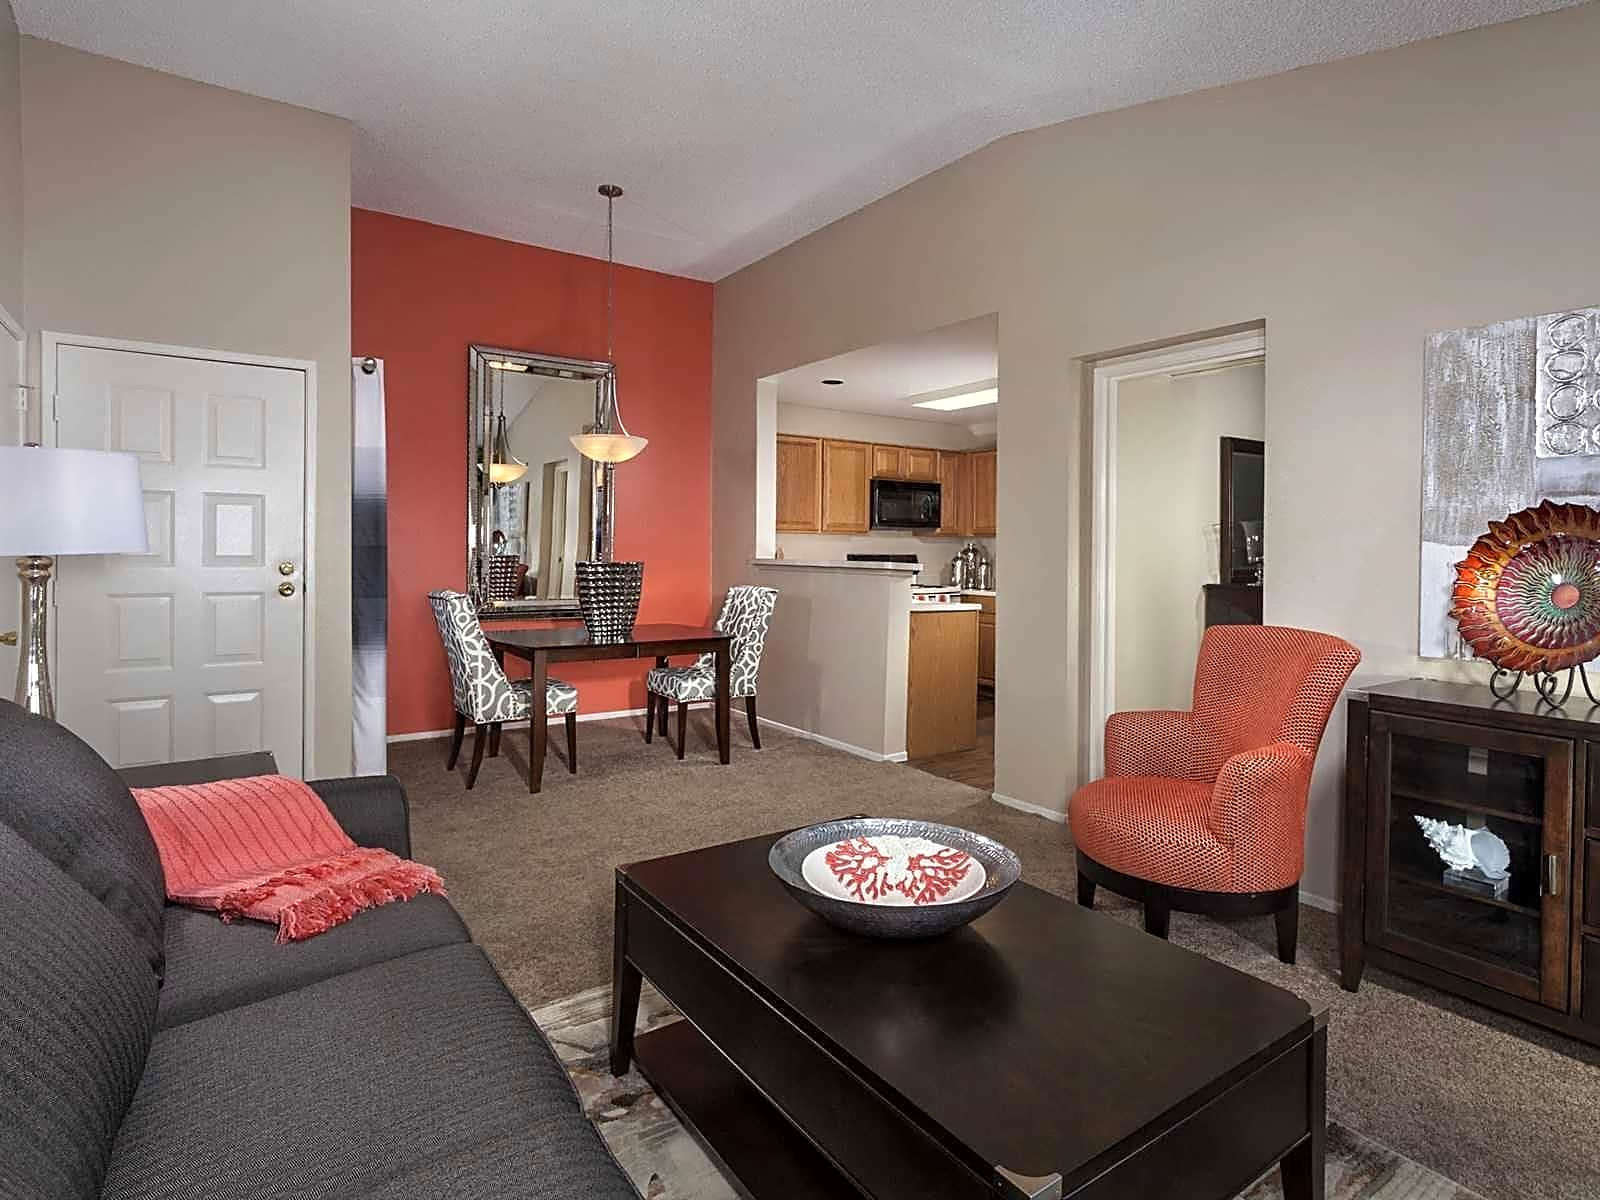 Apartments Near UNLV Crystal Cove At The Lakes for University of Nevada-Las Vegas Students in Las Vegas, NV